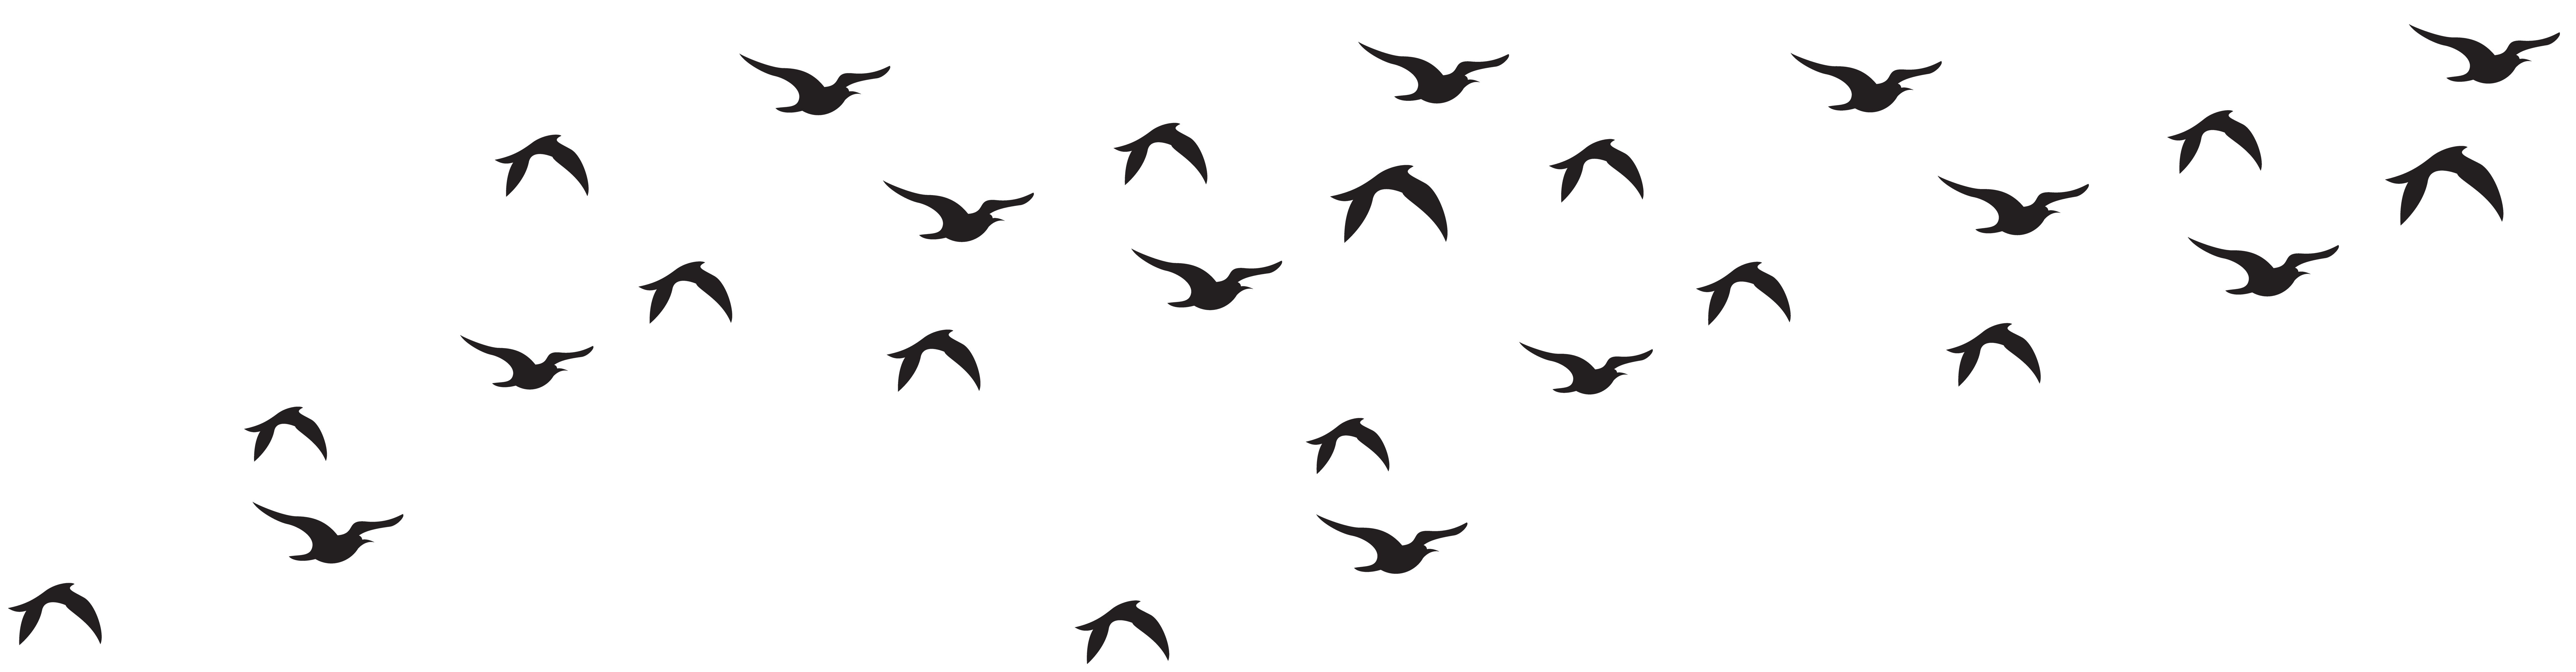 Flock Of Birds clipart #4, Download drawings